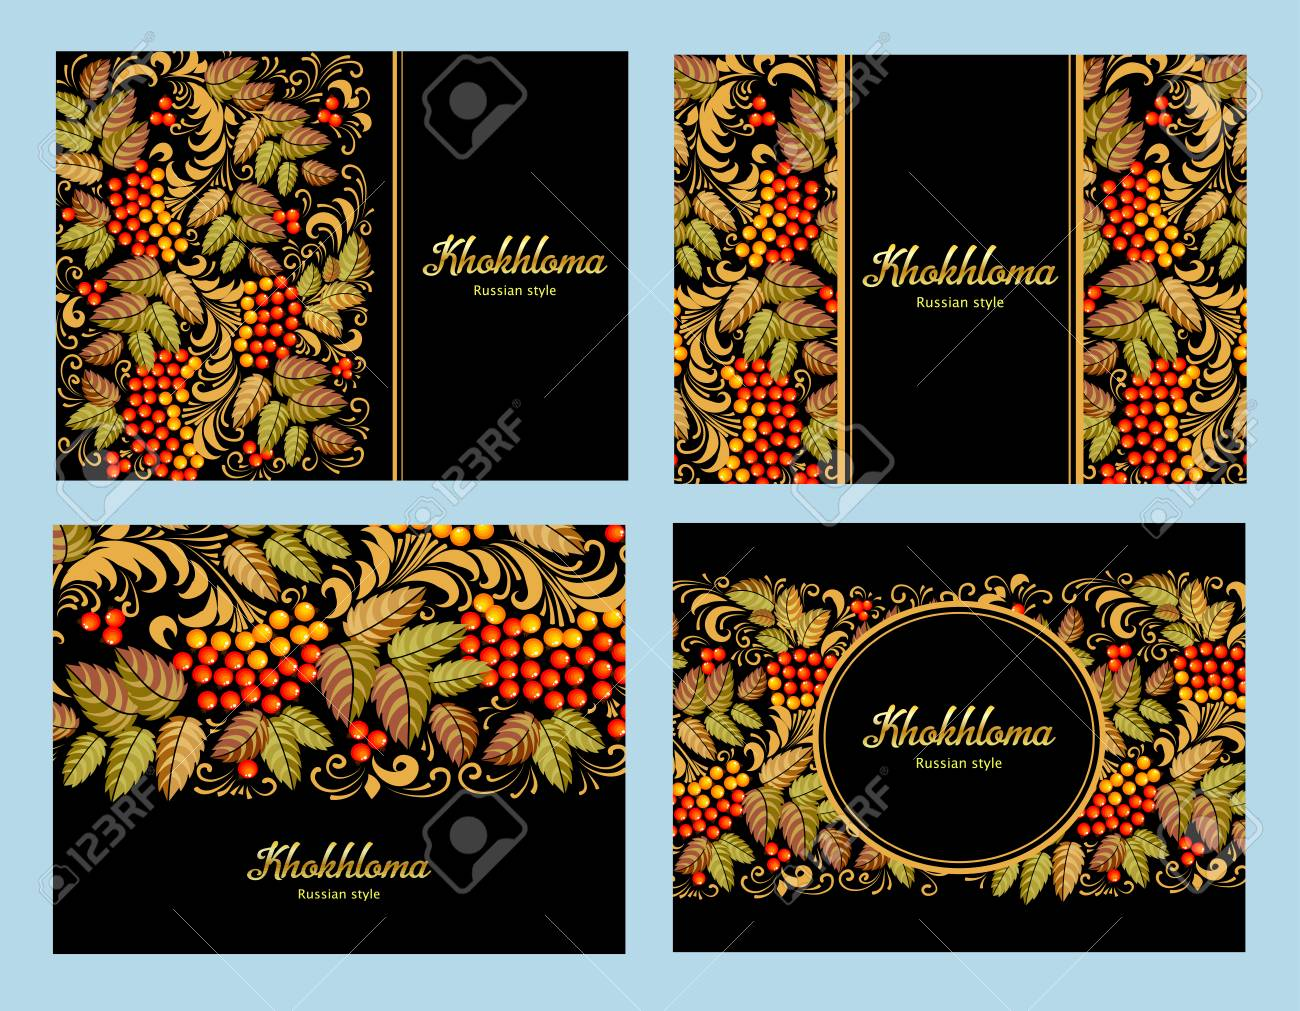 Russian Khokhloma painting ,Russian style decoration and design element, vector graphics. Banners with text - 121369987